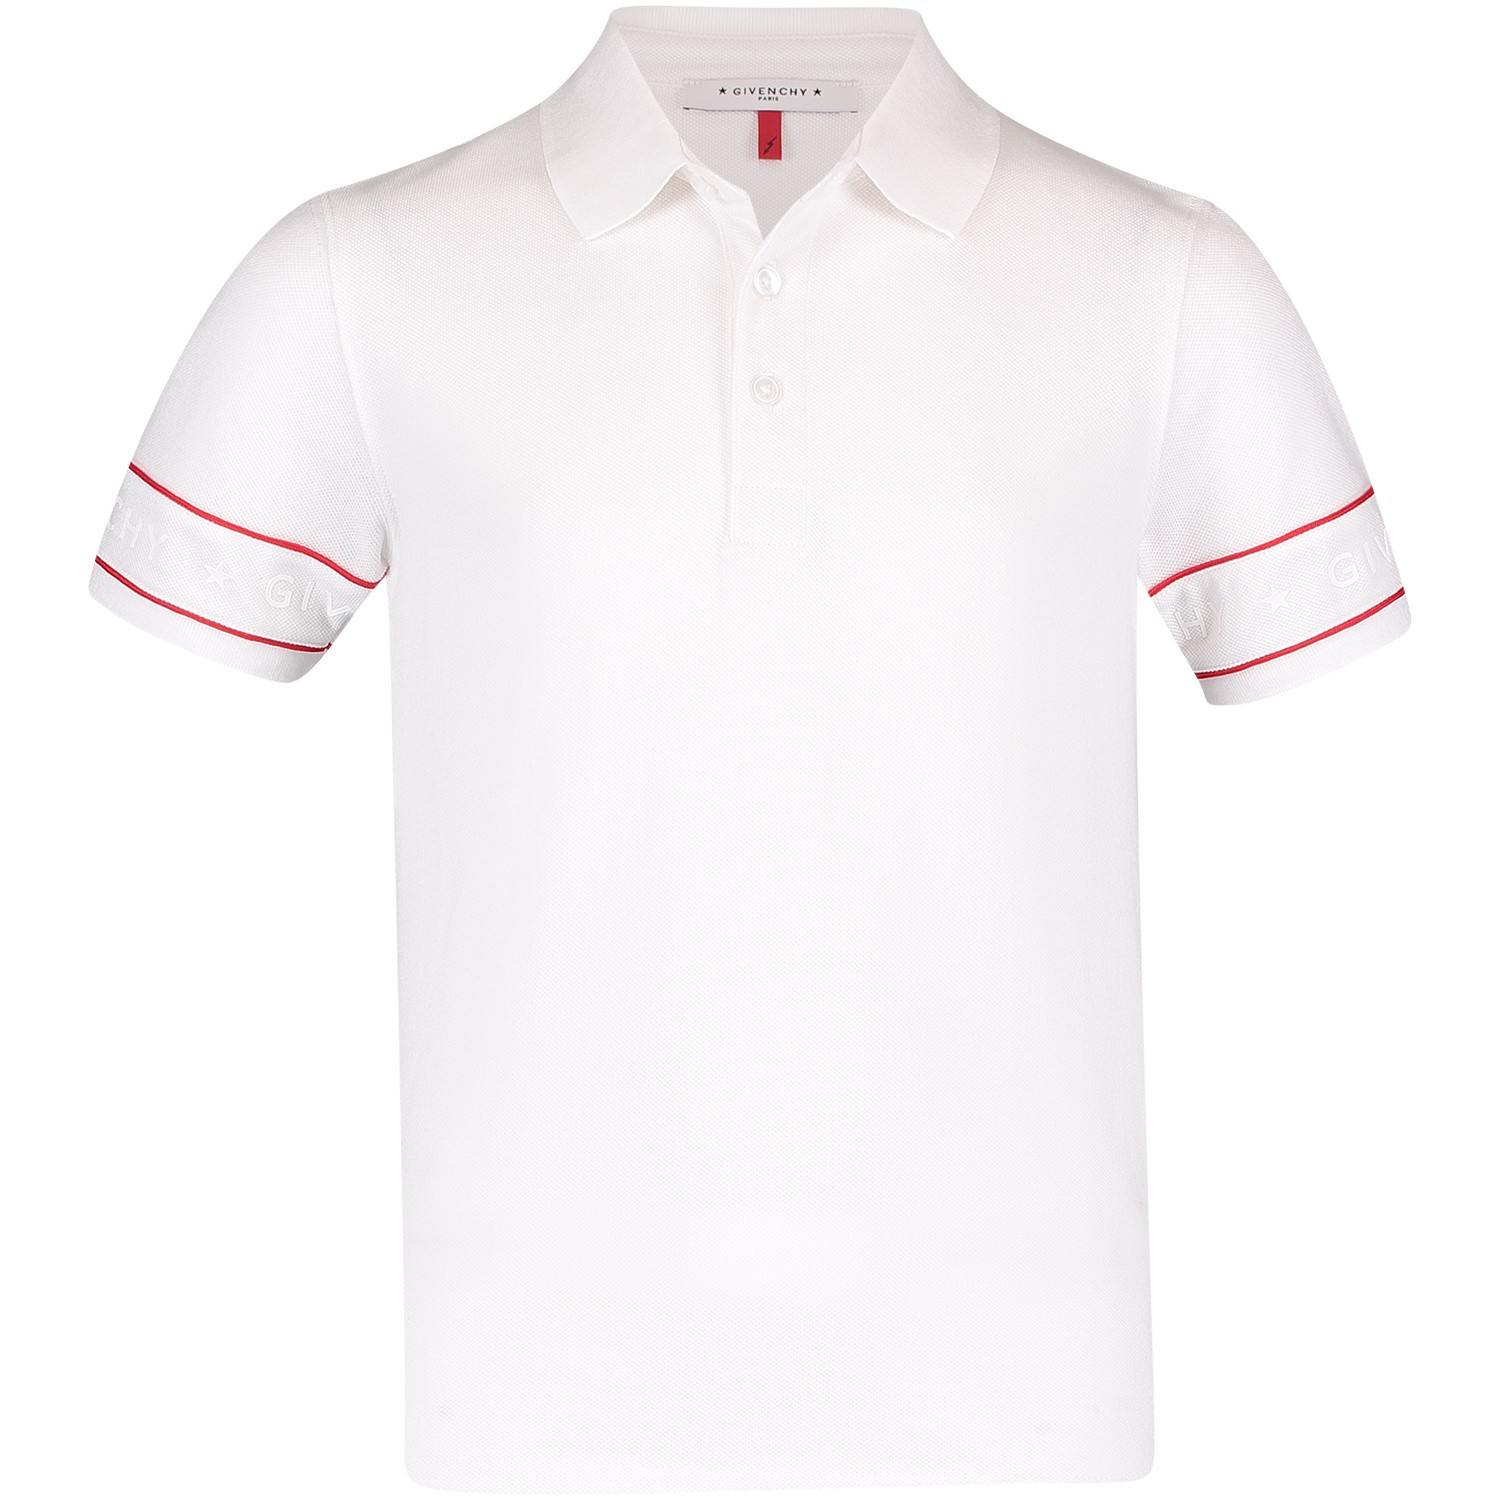 Afbeelding van Givenchy H25091 kinder polo wit